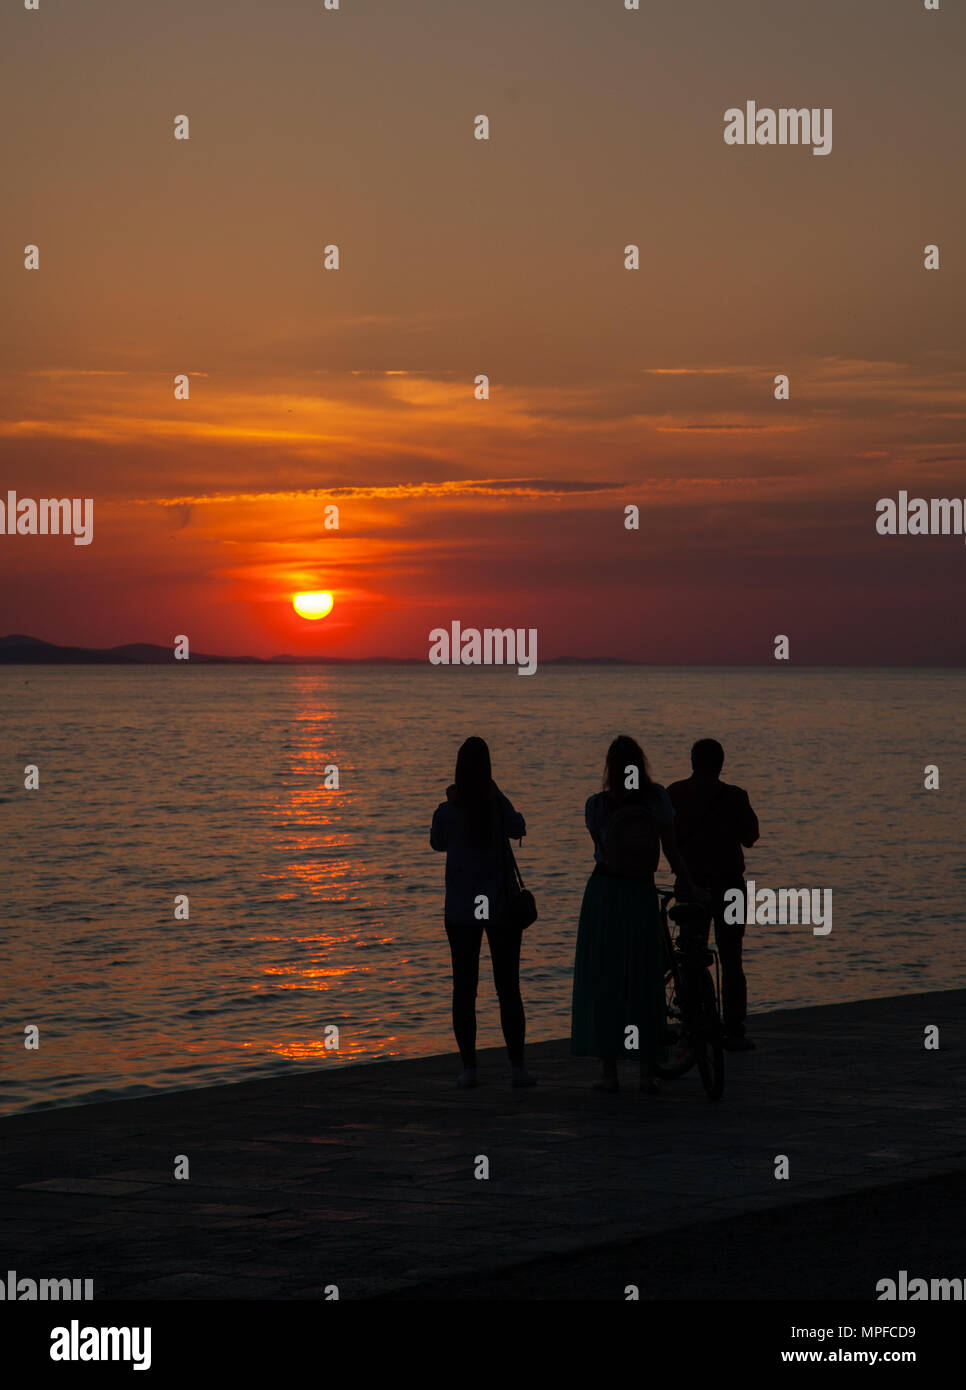 People watching beautiful glorious golden red and orange vivid vibrant sunset over the sea at the port of Zadar on the Adriatic coast Croatia - Stock Image